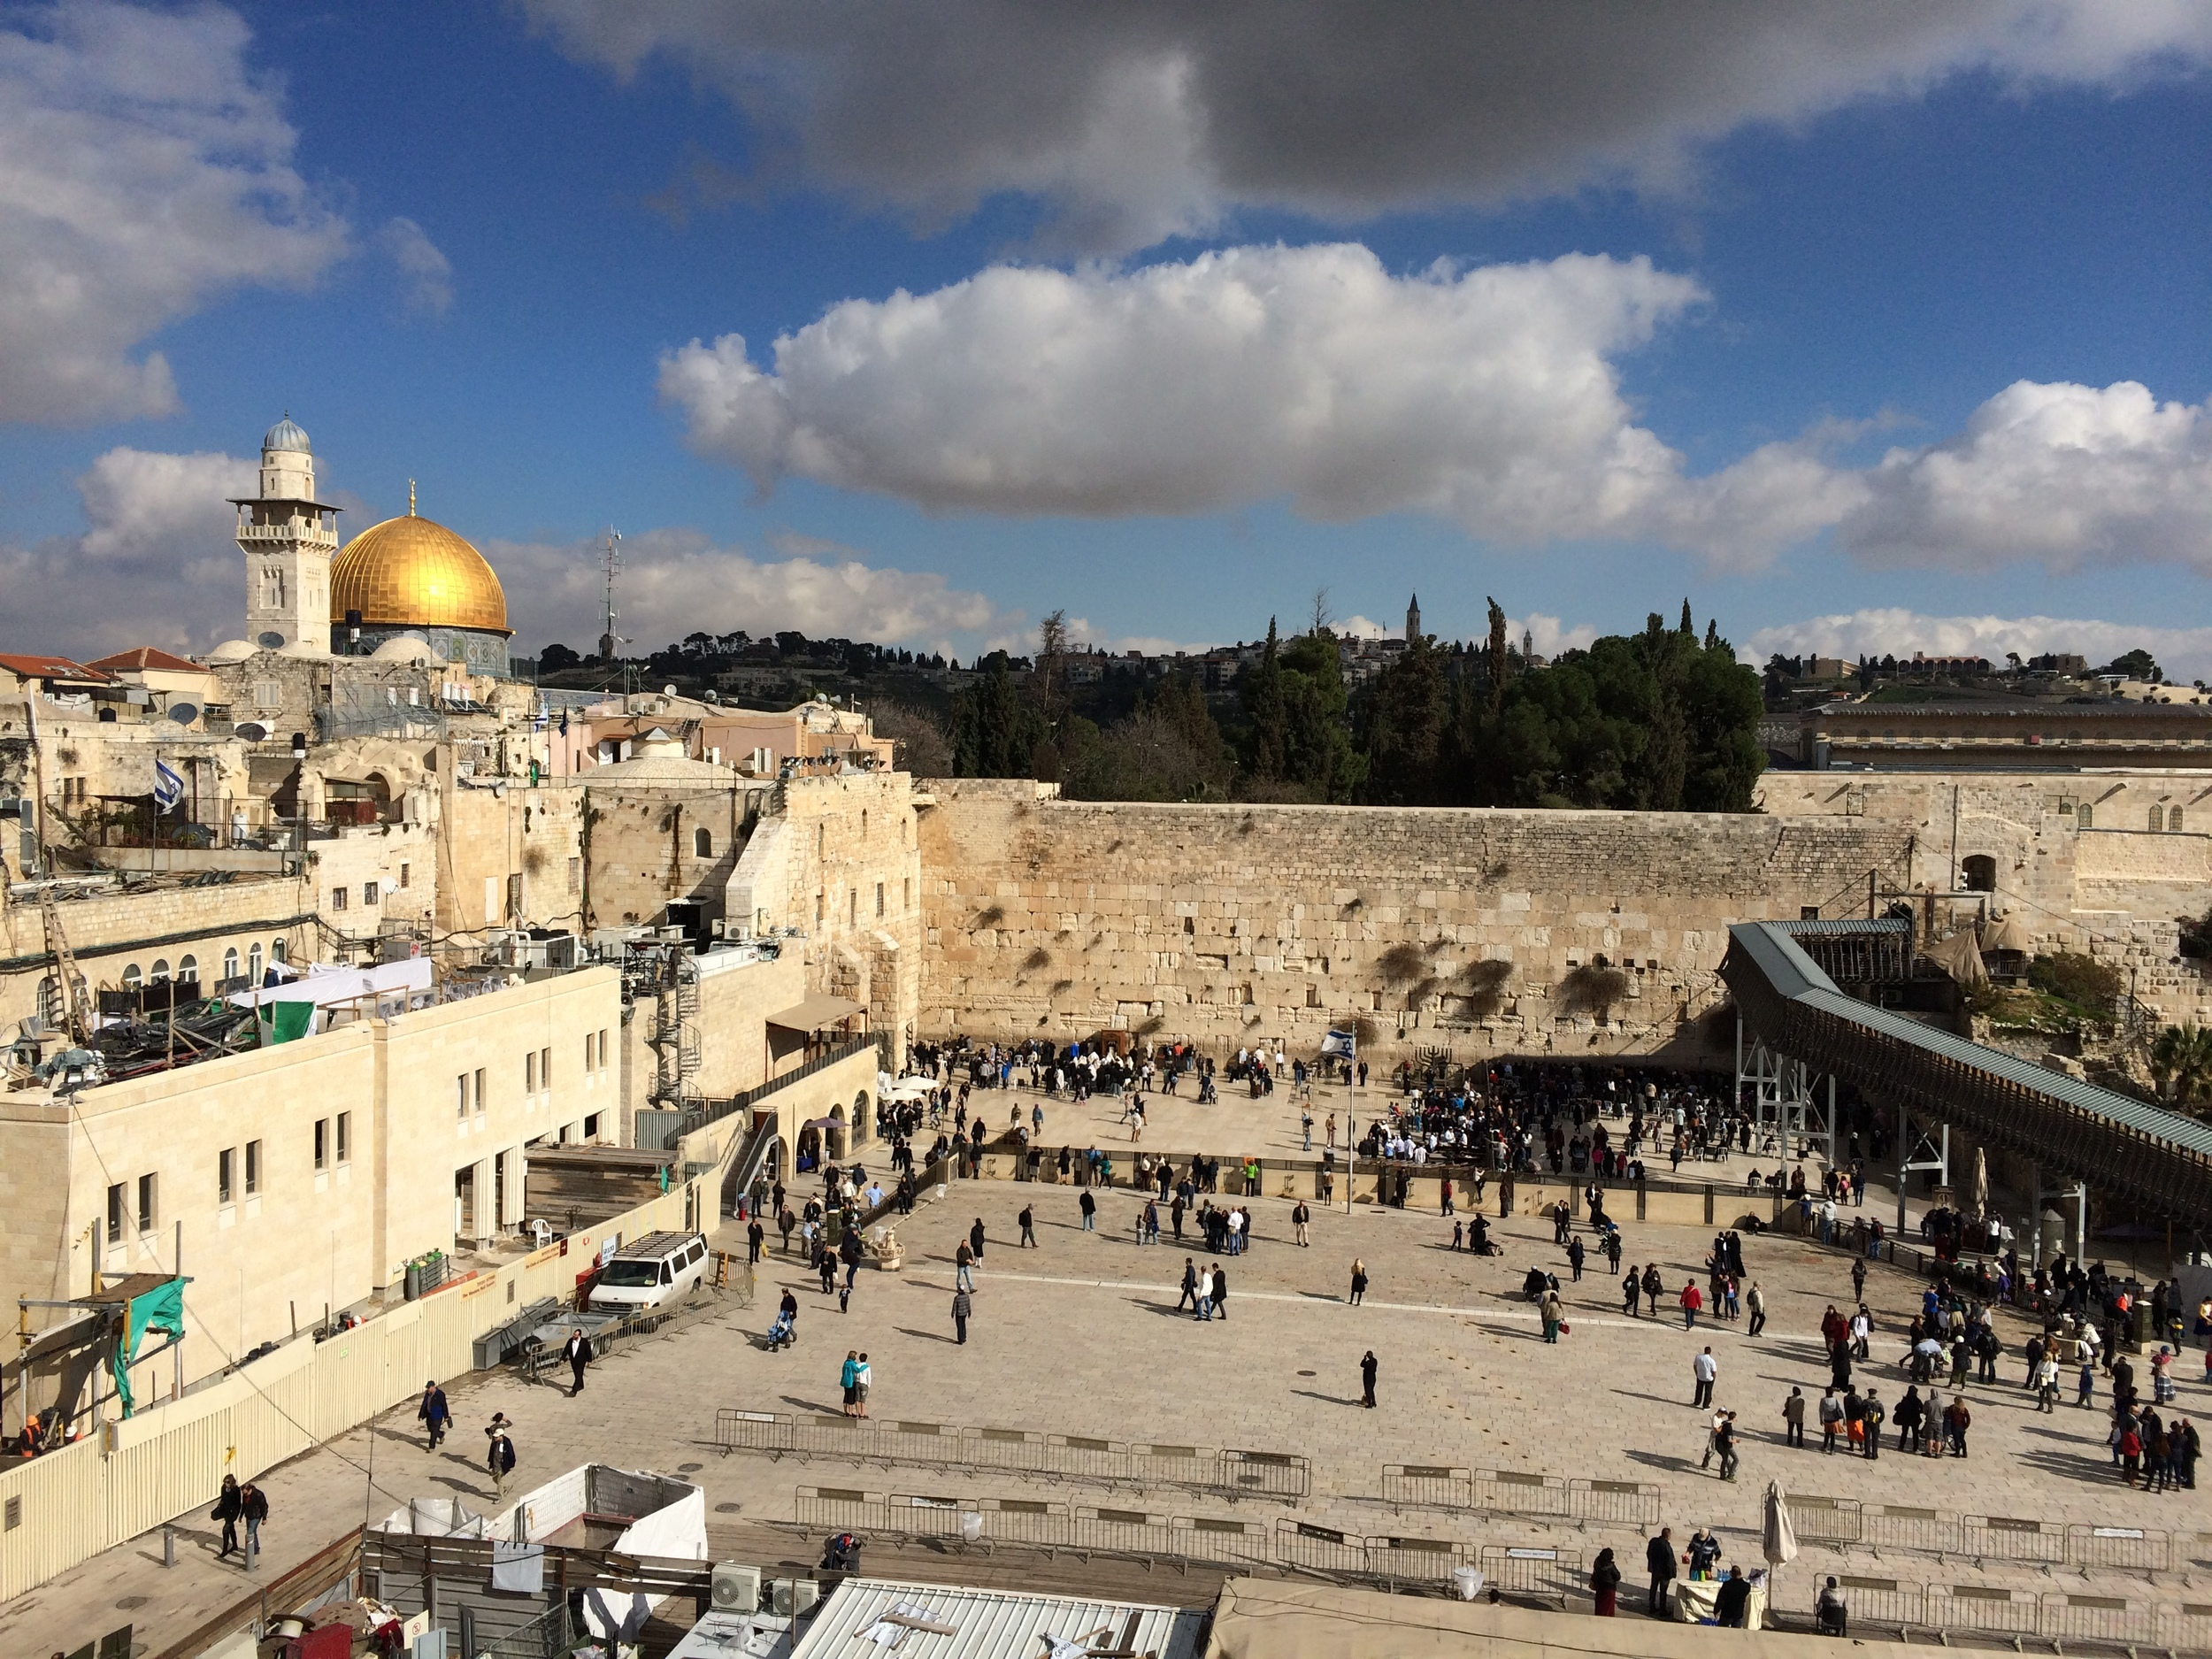 View of the famous Western Wall.